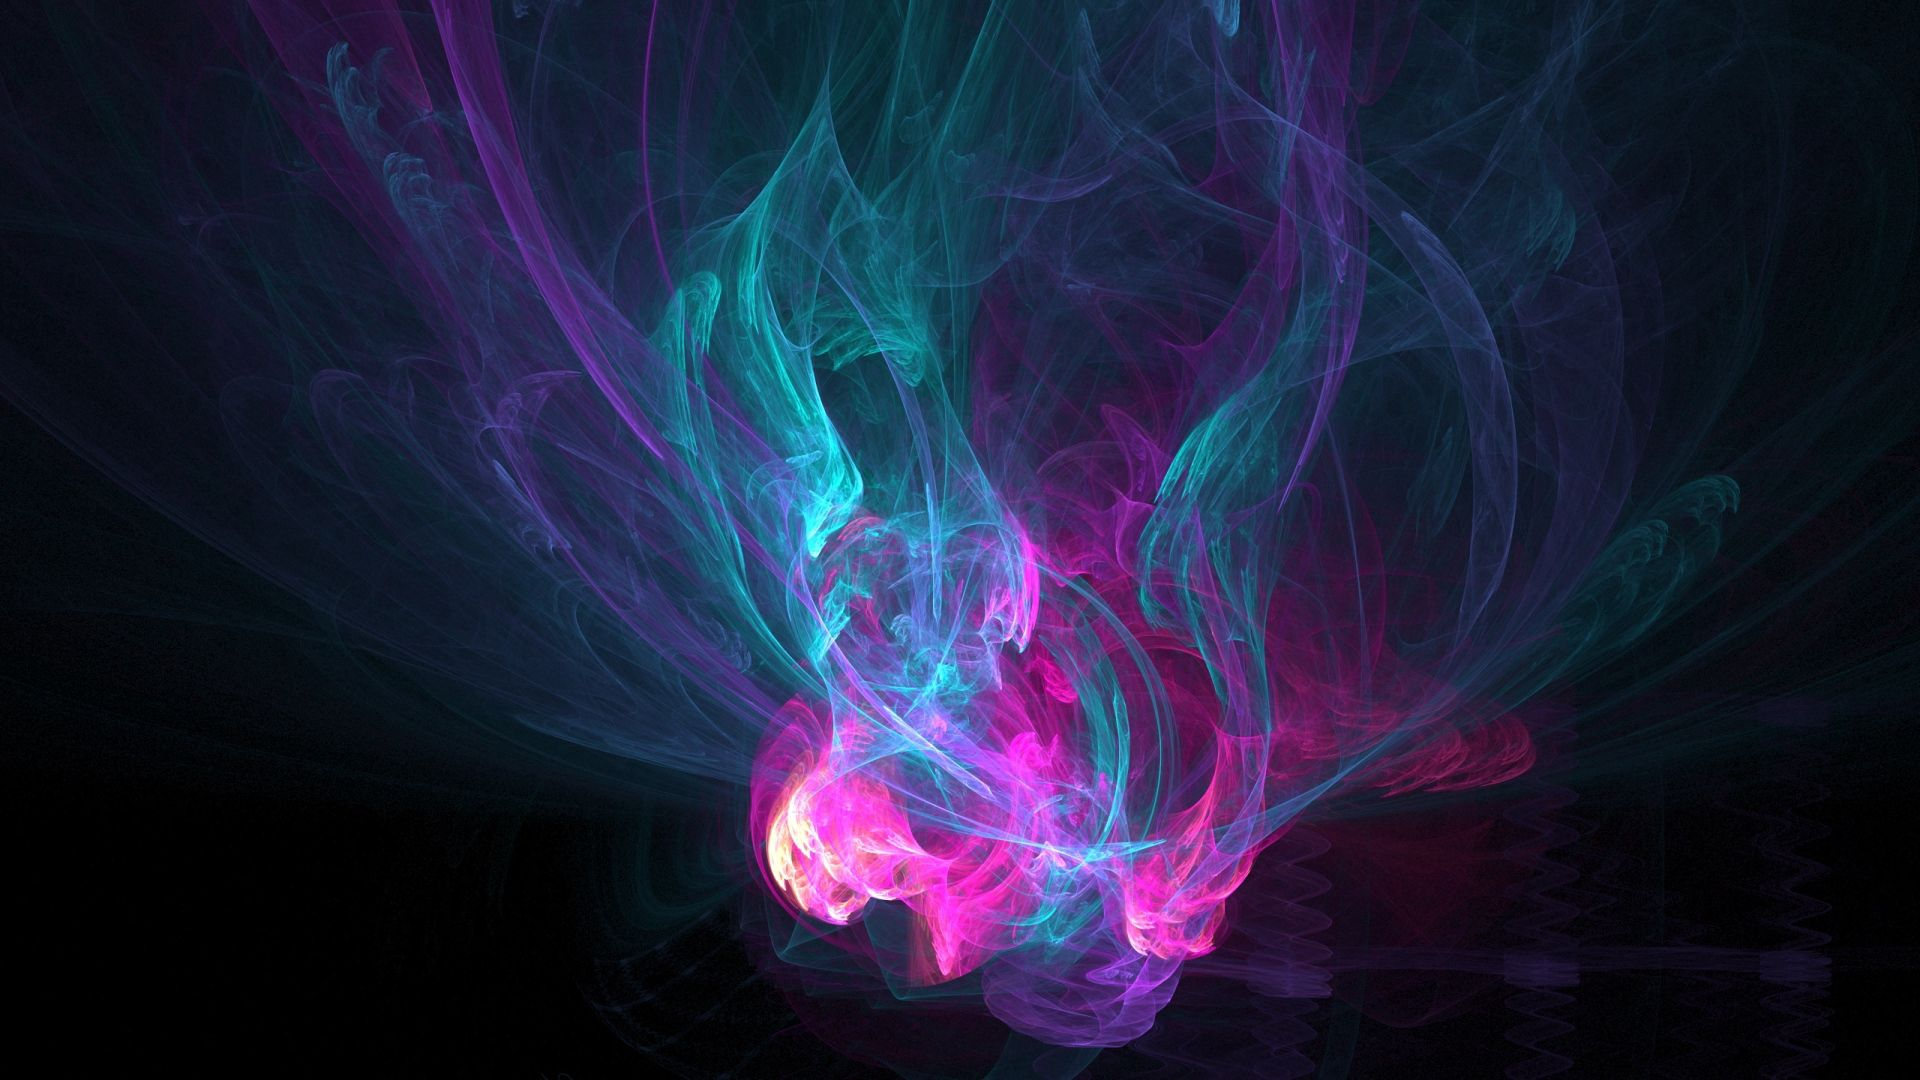 134897 download wallpaper Abstract, Color, Bright, Shroud, Smoke screensavers and pictures for free